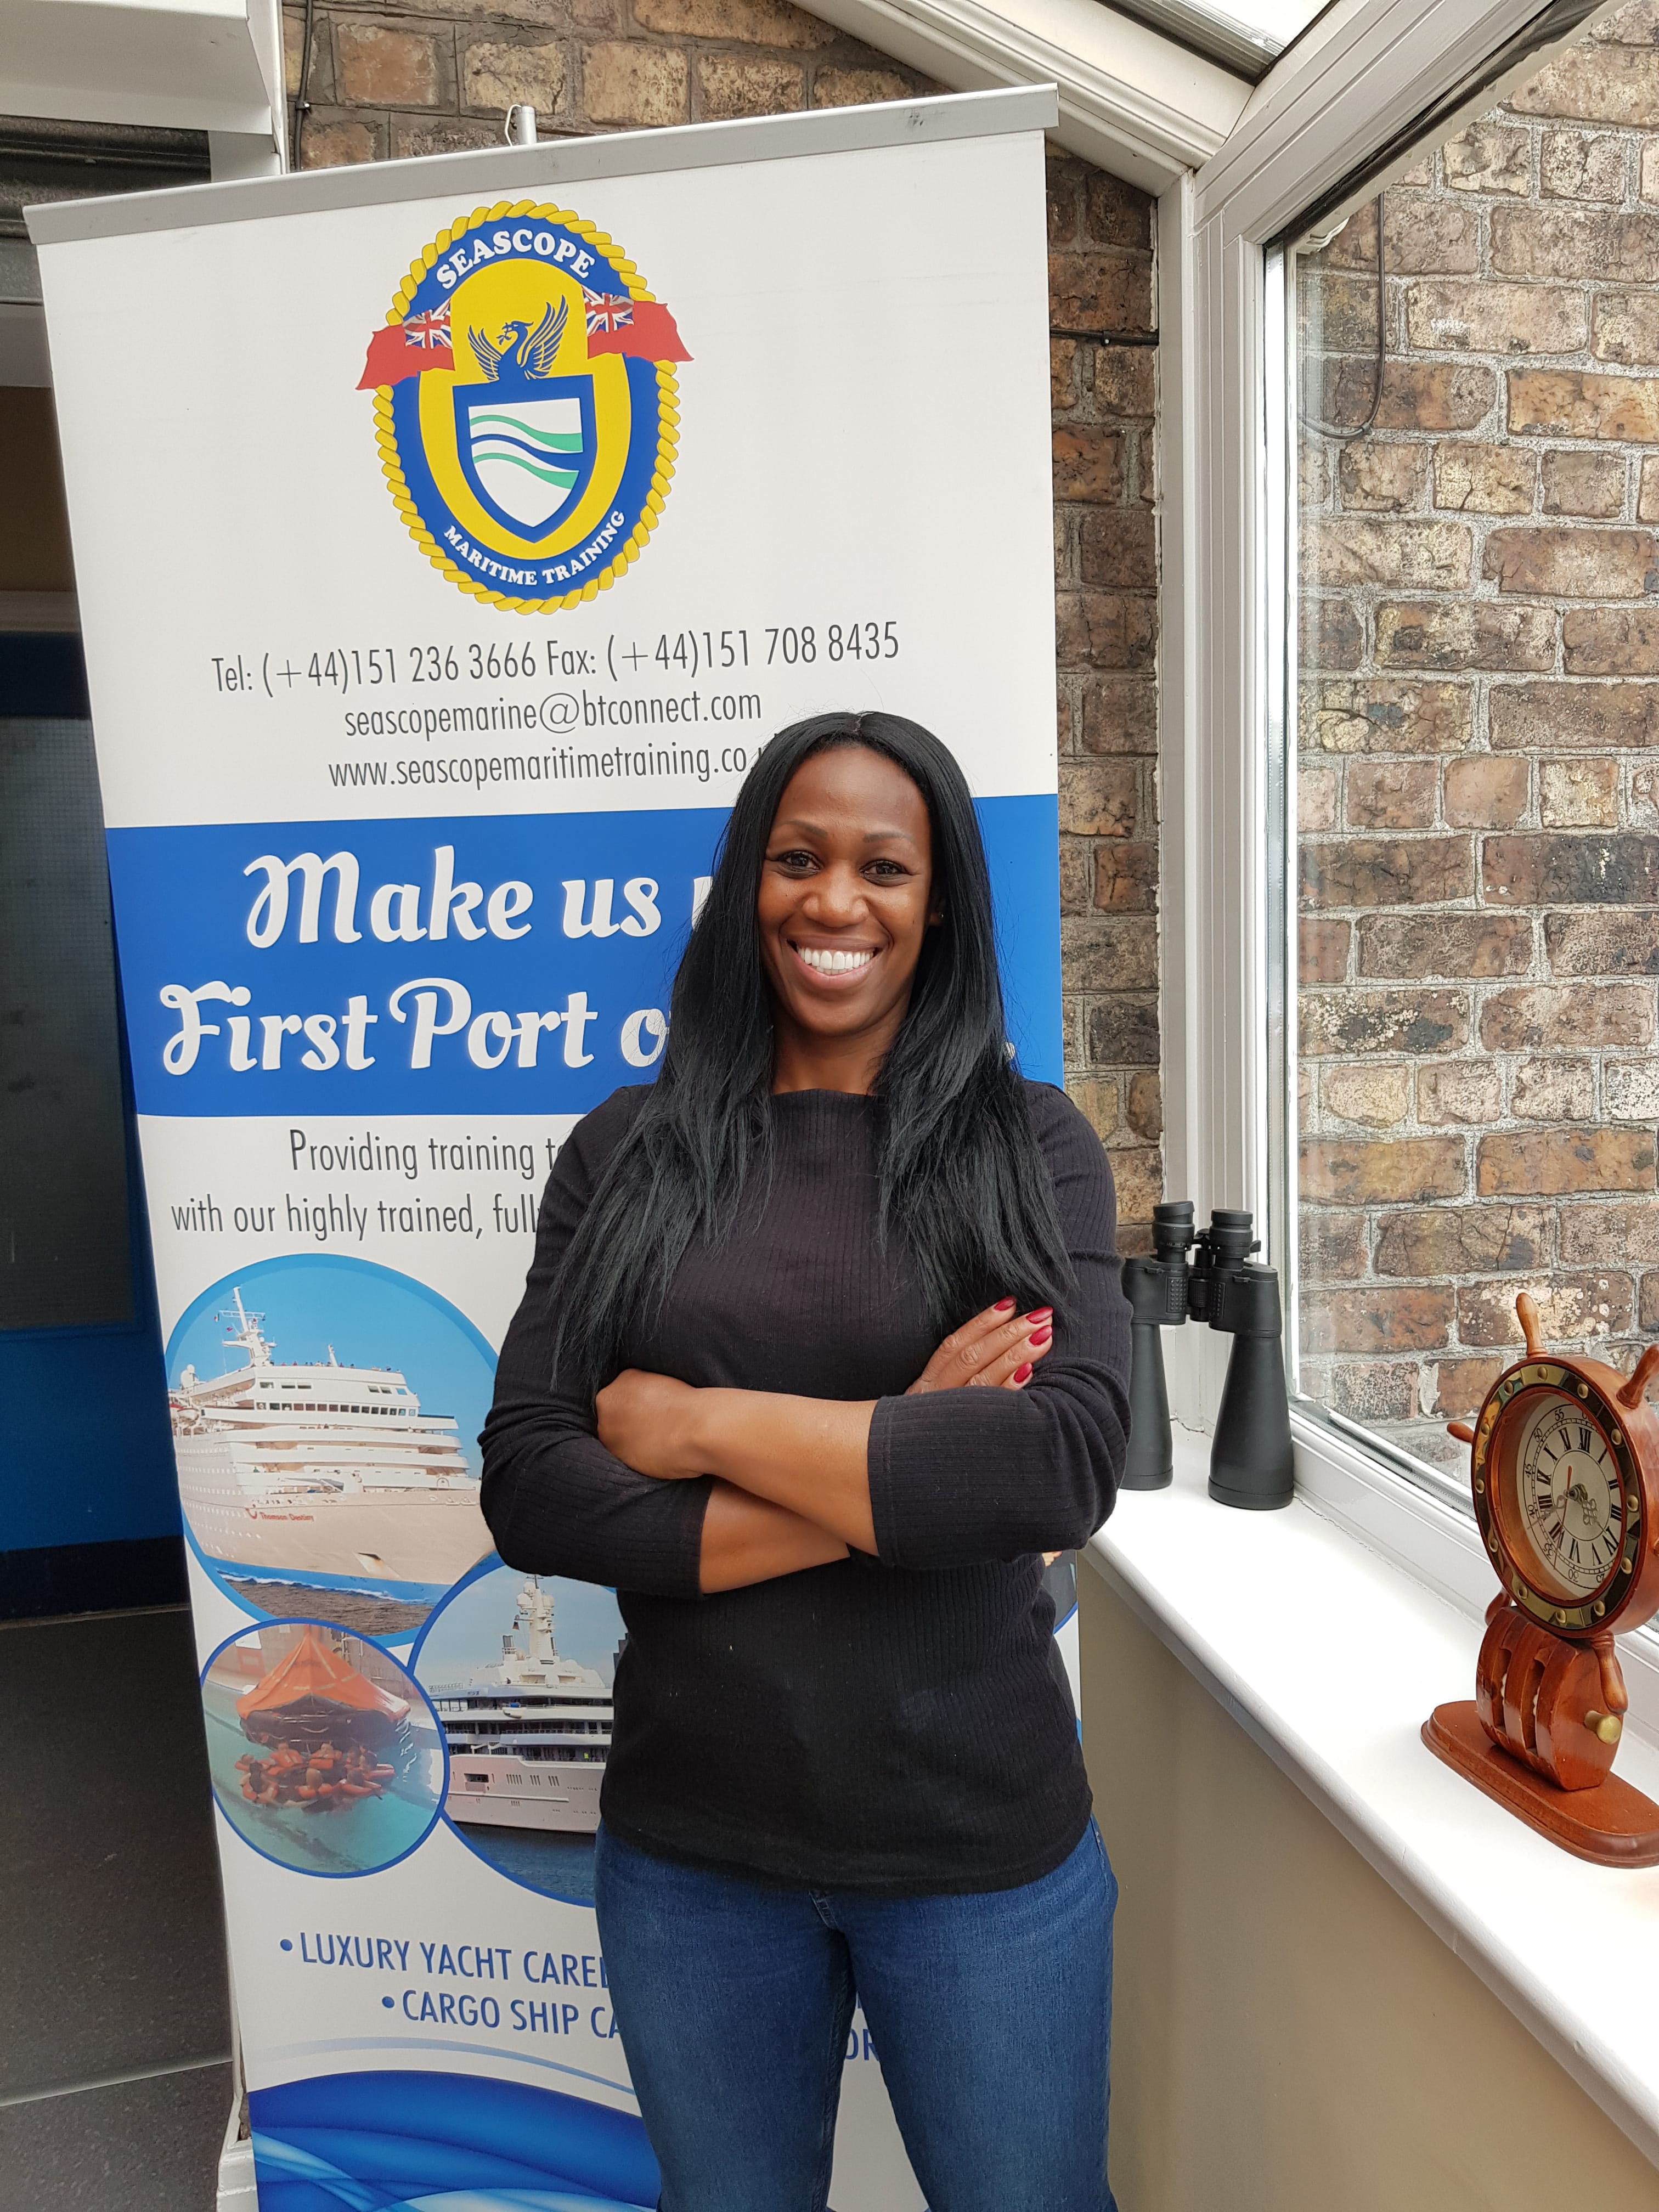 Student Profile- From The Bobsleigh To The Yachts